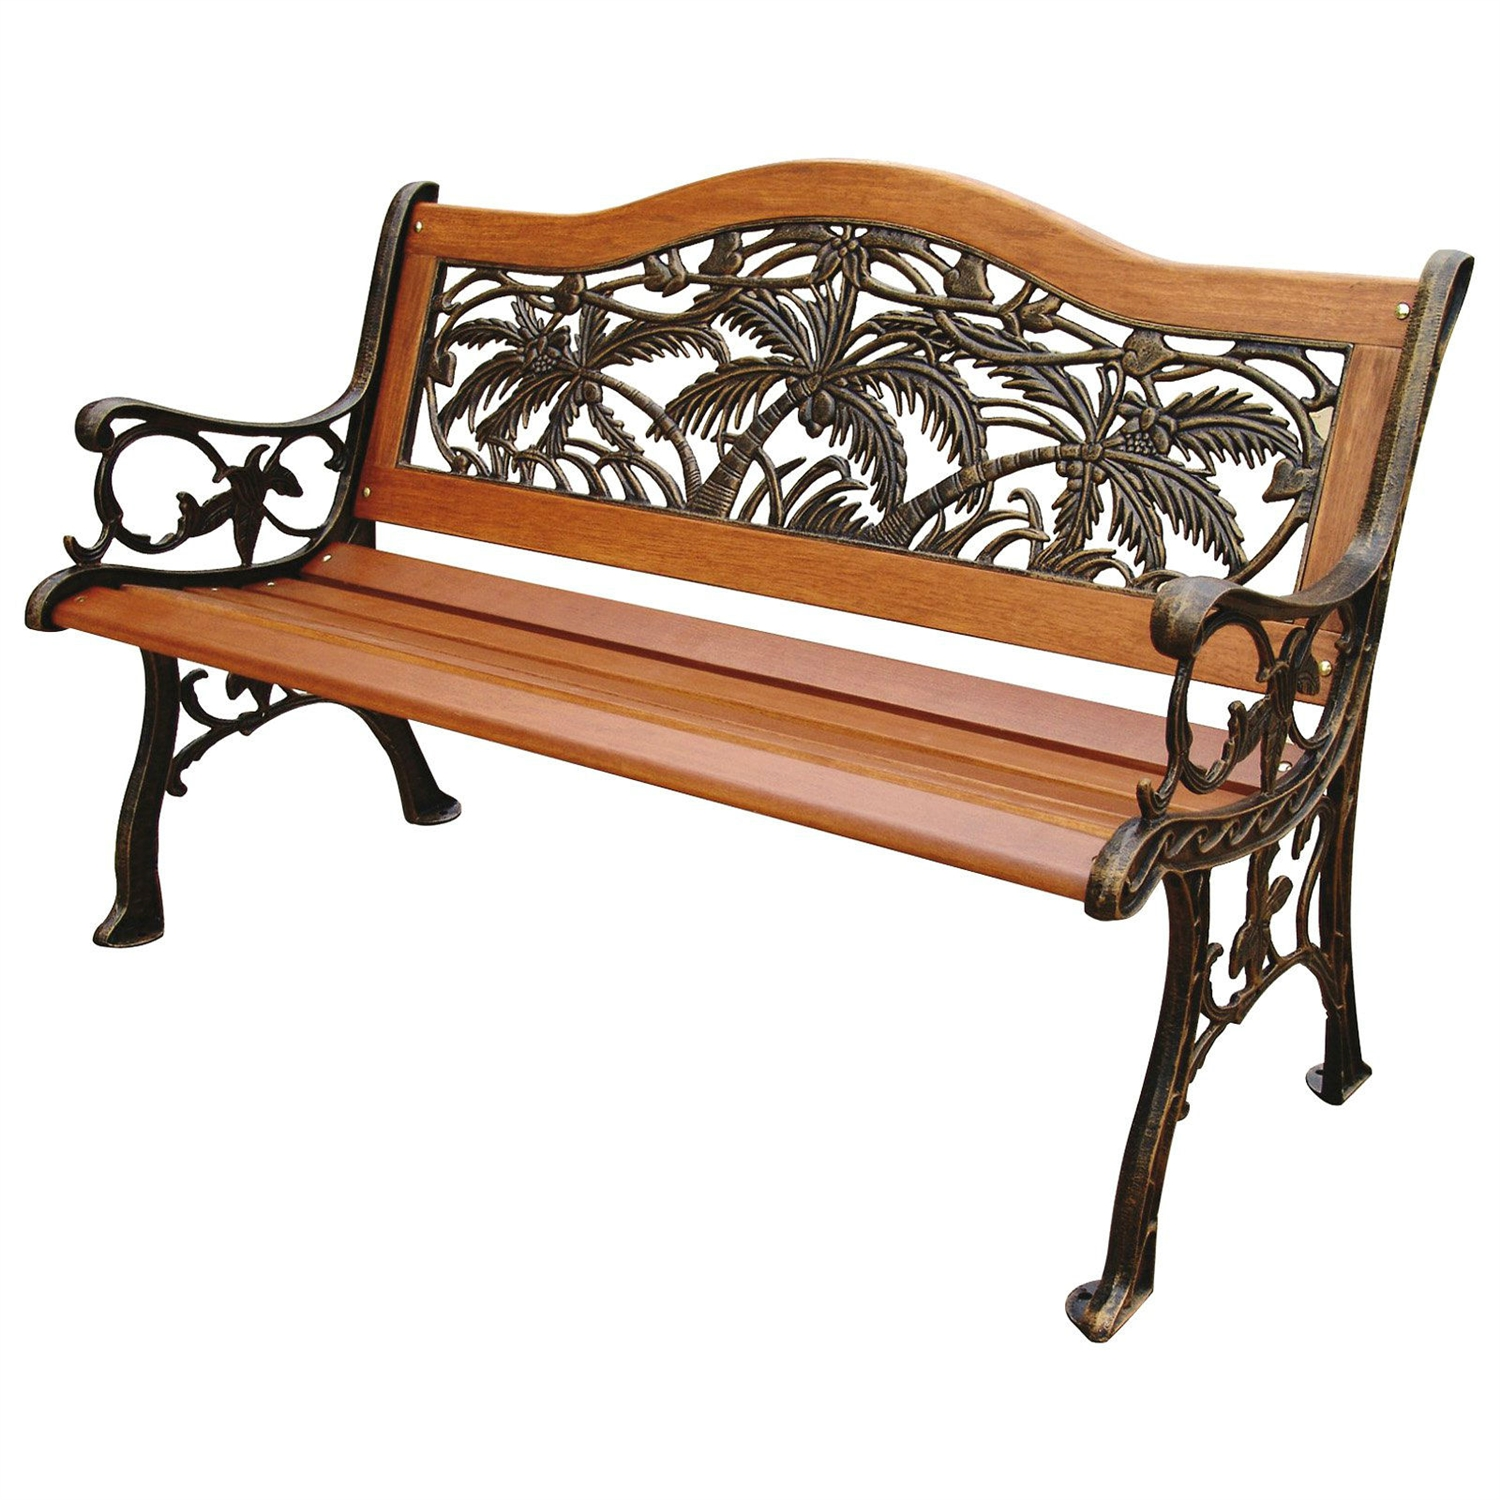 kingsley with prod wooden bench product chippendale backrest bate garden traditional